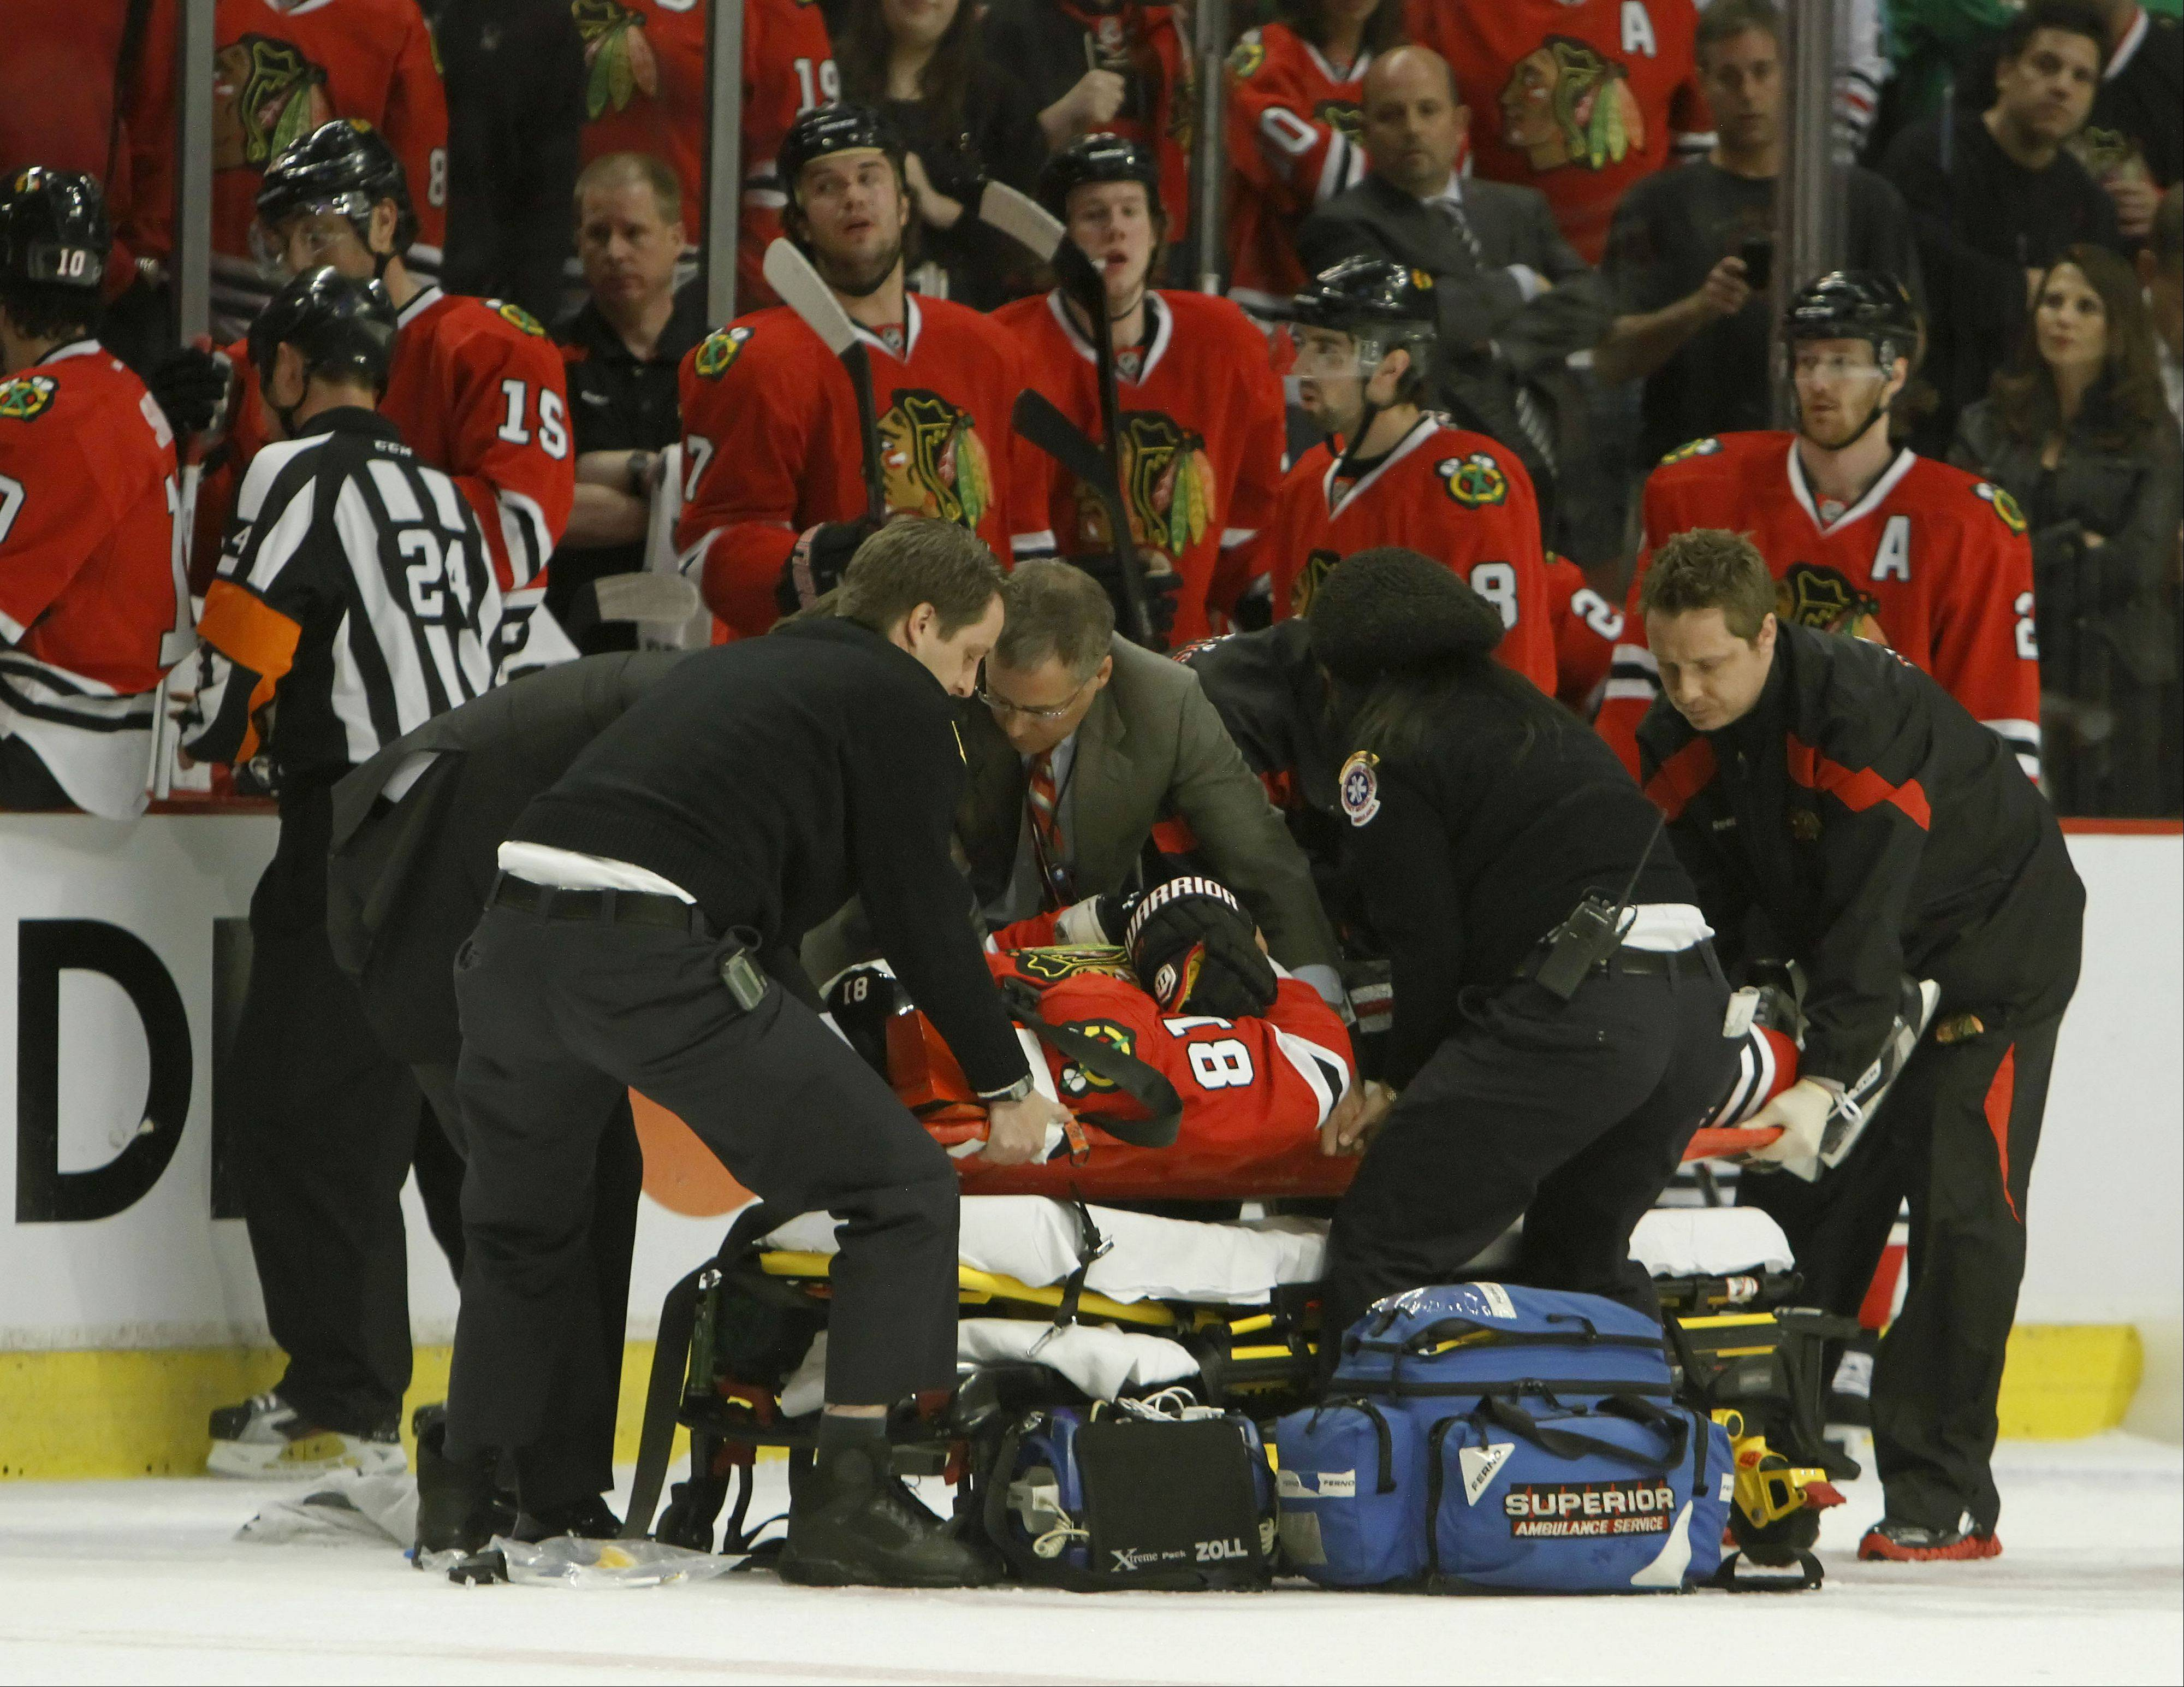 Chicago Blackhawks right wing Marian Hossa is taken off the ice on a stretcher after getting an elbow from Phoenix Coyotes left wing Raffi Torres during Game 3 of the Western Conference quarterfinals Tuesday at the United Center. Torres was suspended indefinitely by the NHL pending a hearing Friday.